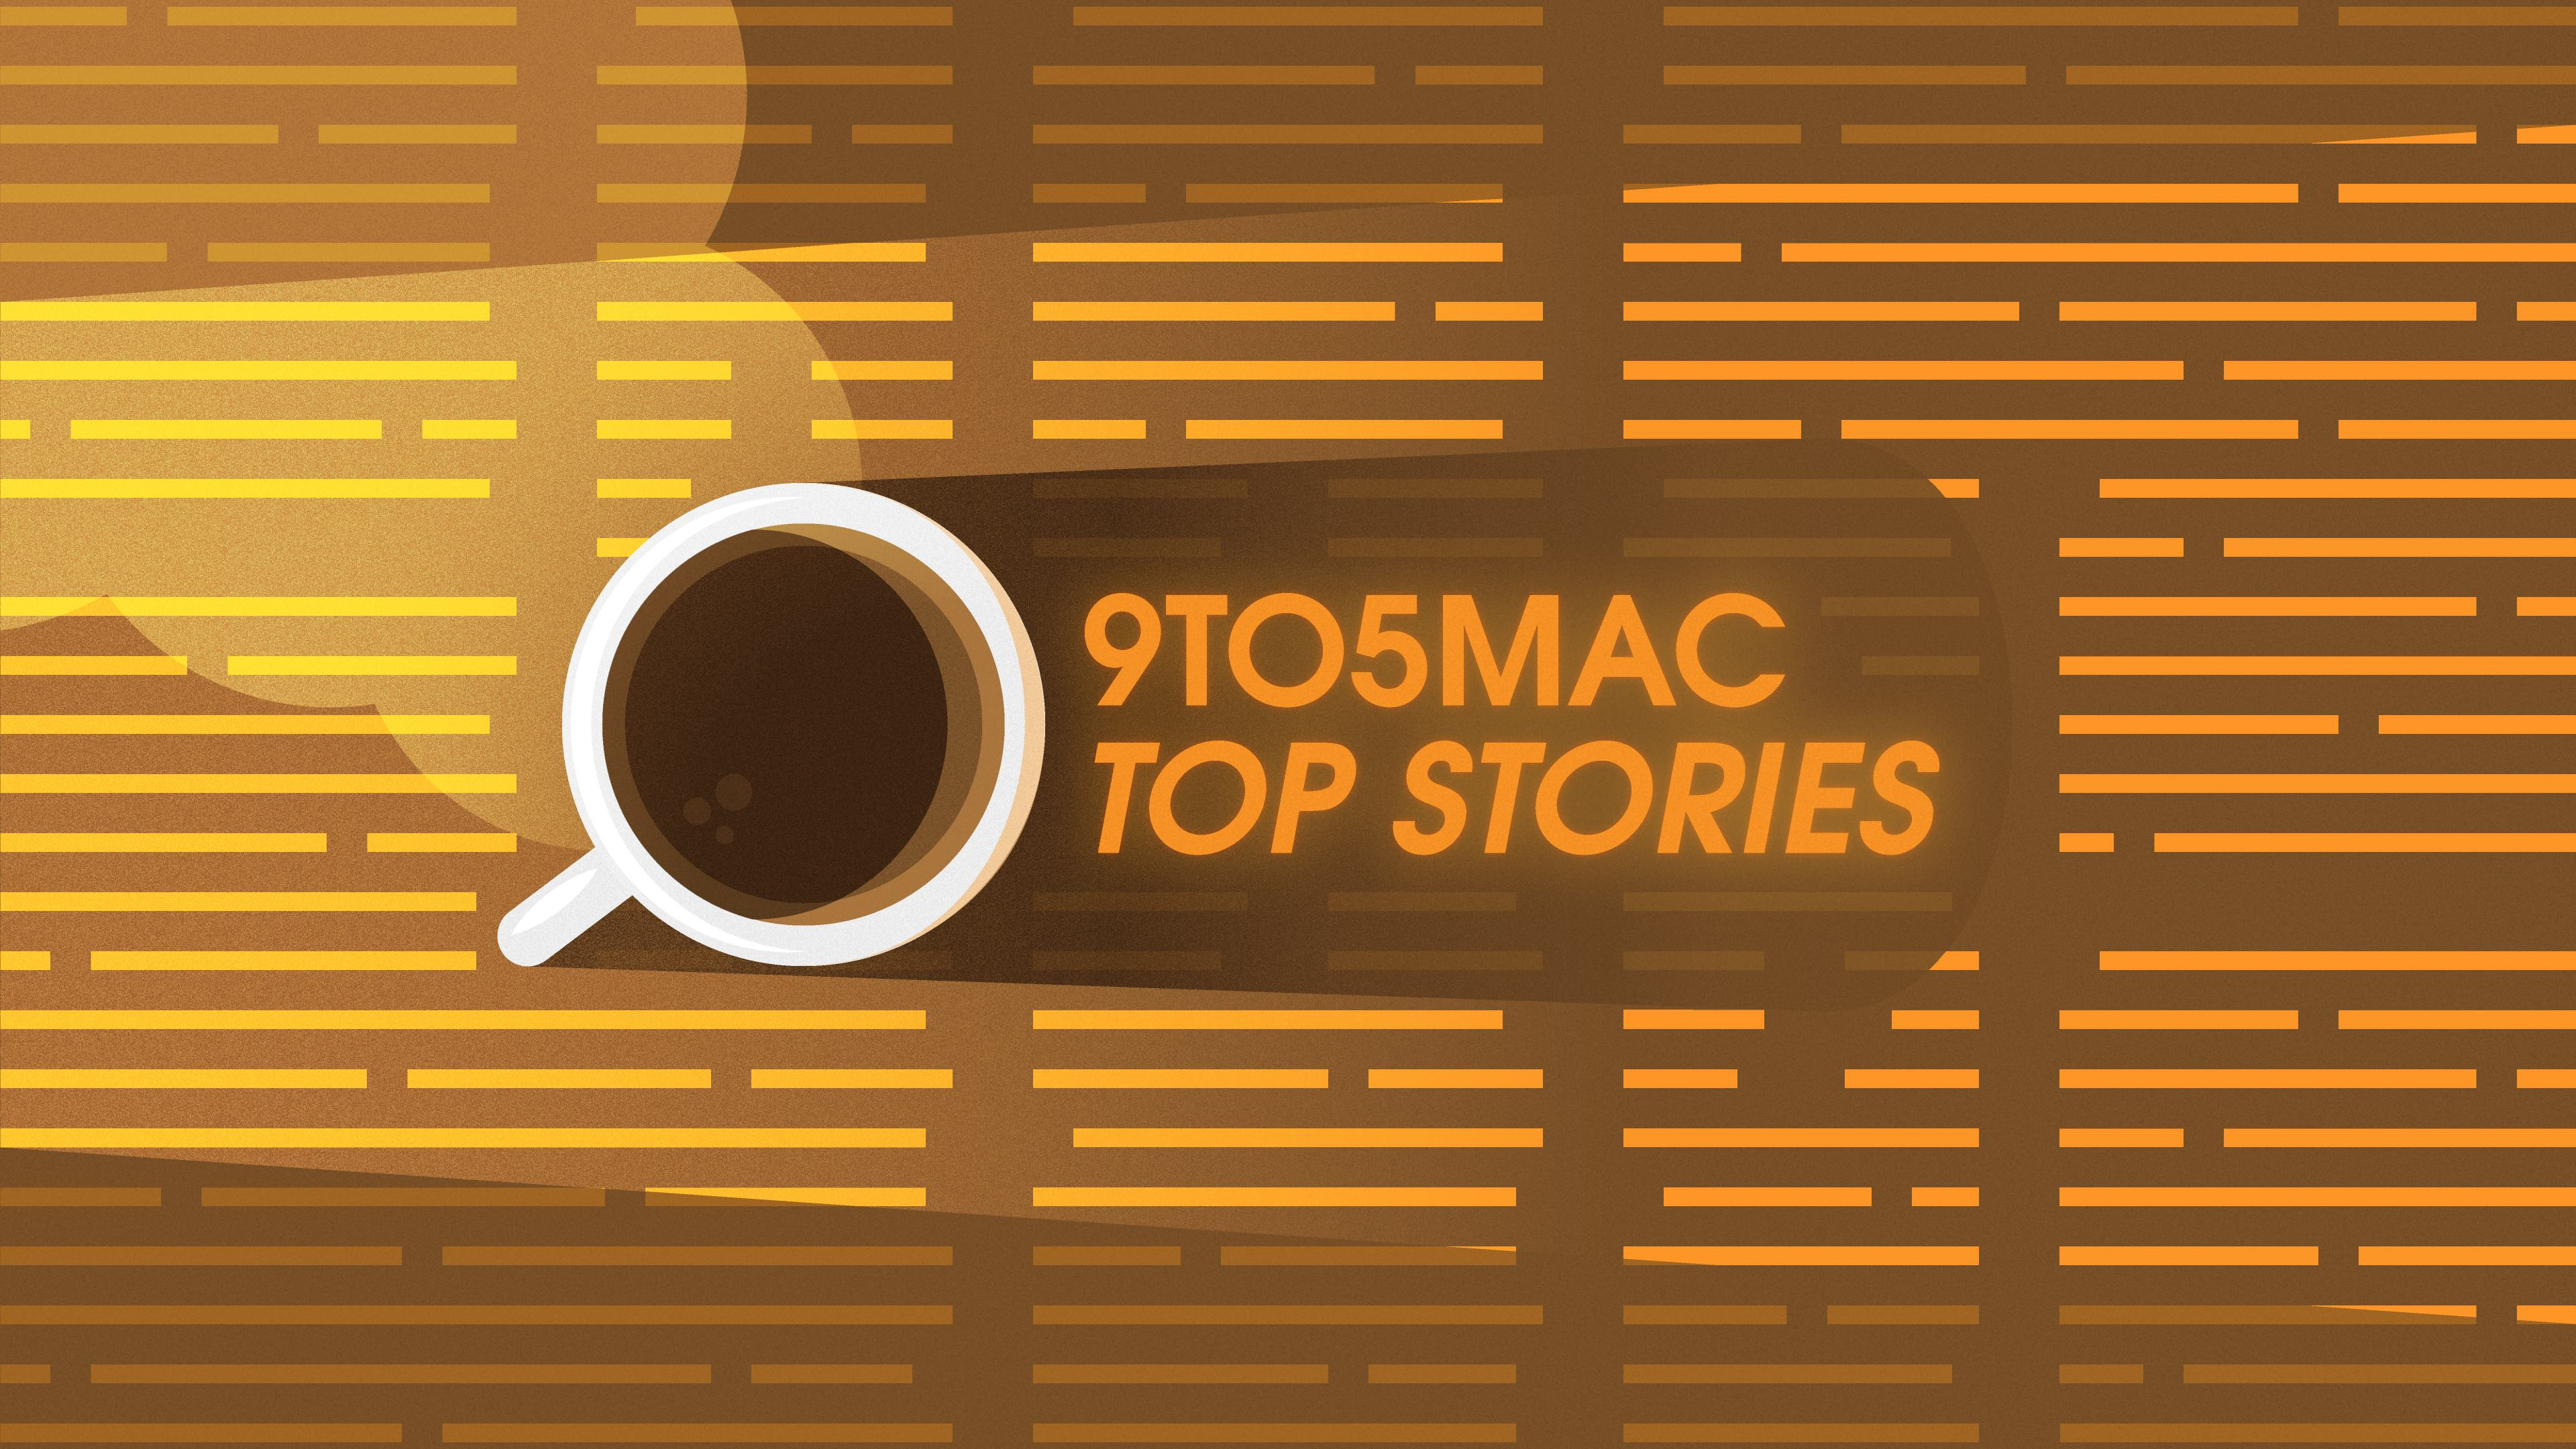 This week's top stories: Apple April event confirmed, Apple Pencil 3, iPhone 14 rumors, more